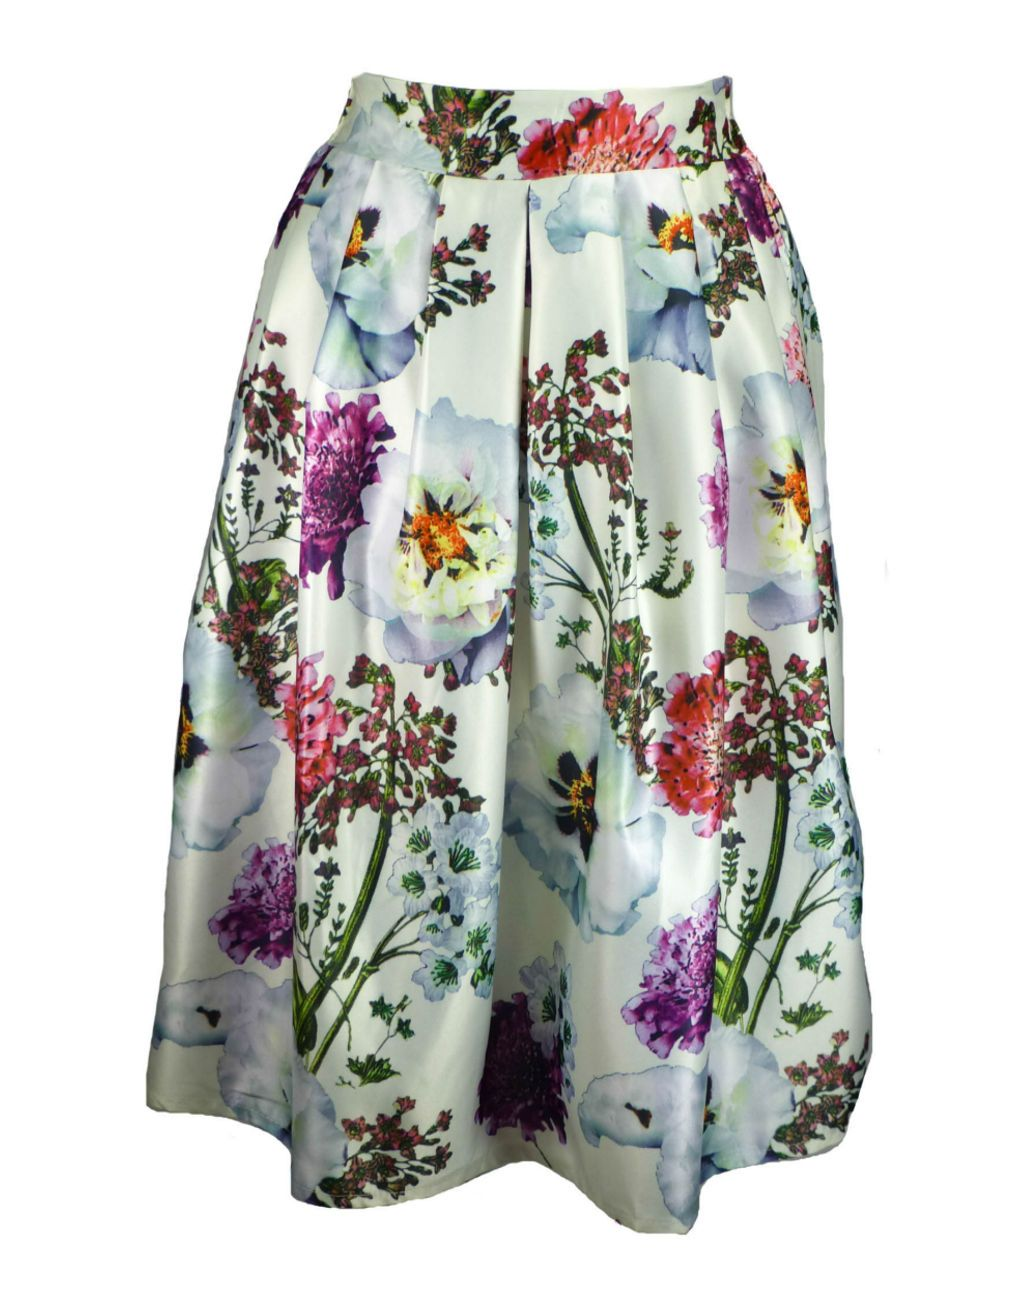 Summer wedding or evening cruise outfit- Shikha London Cream Floral Midi Skirt